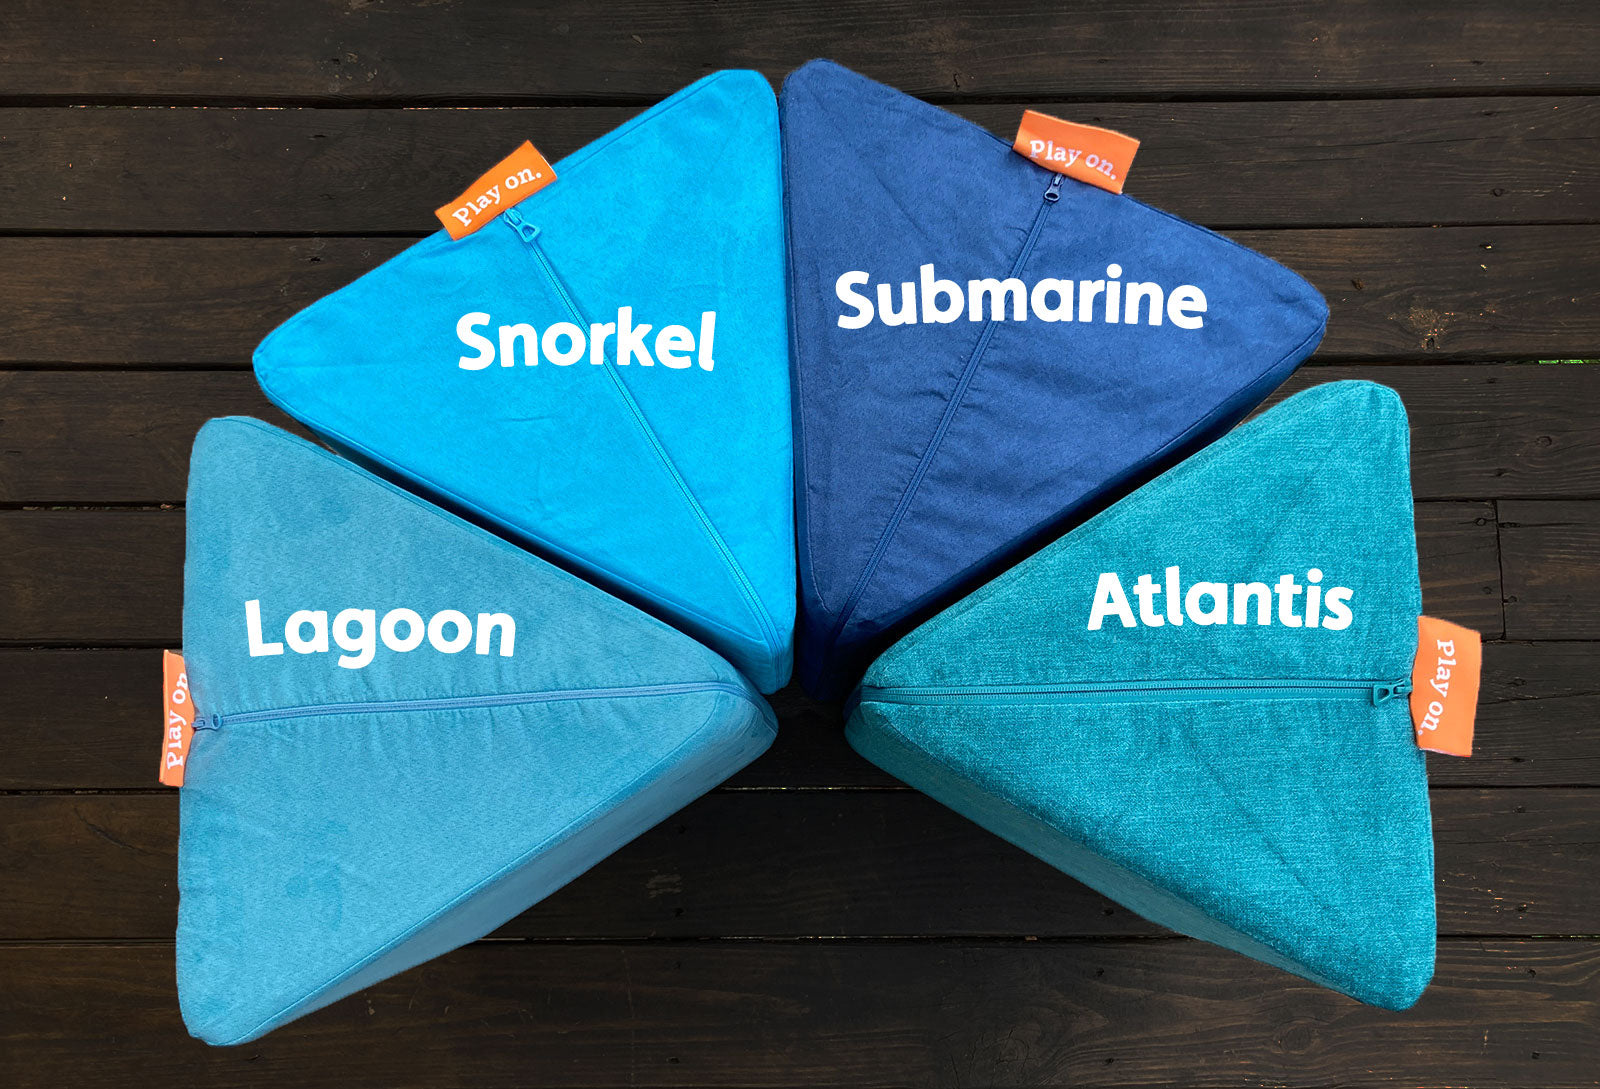 Four Nugget pillows, in different shades of blue: dusty, desaturated warm blue; bright, popping aquamarine; deep, nautical navy; and a textured teal blue